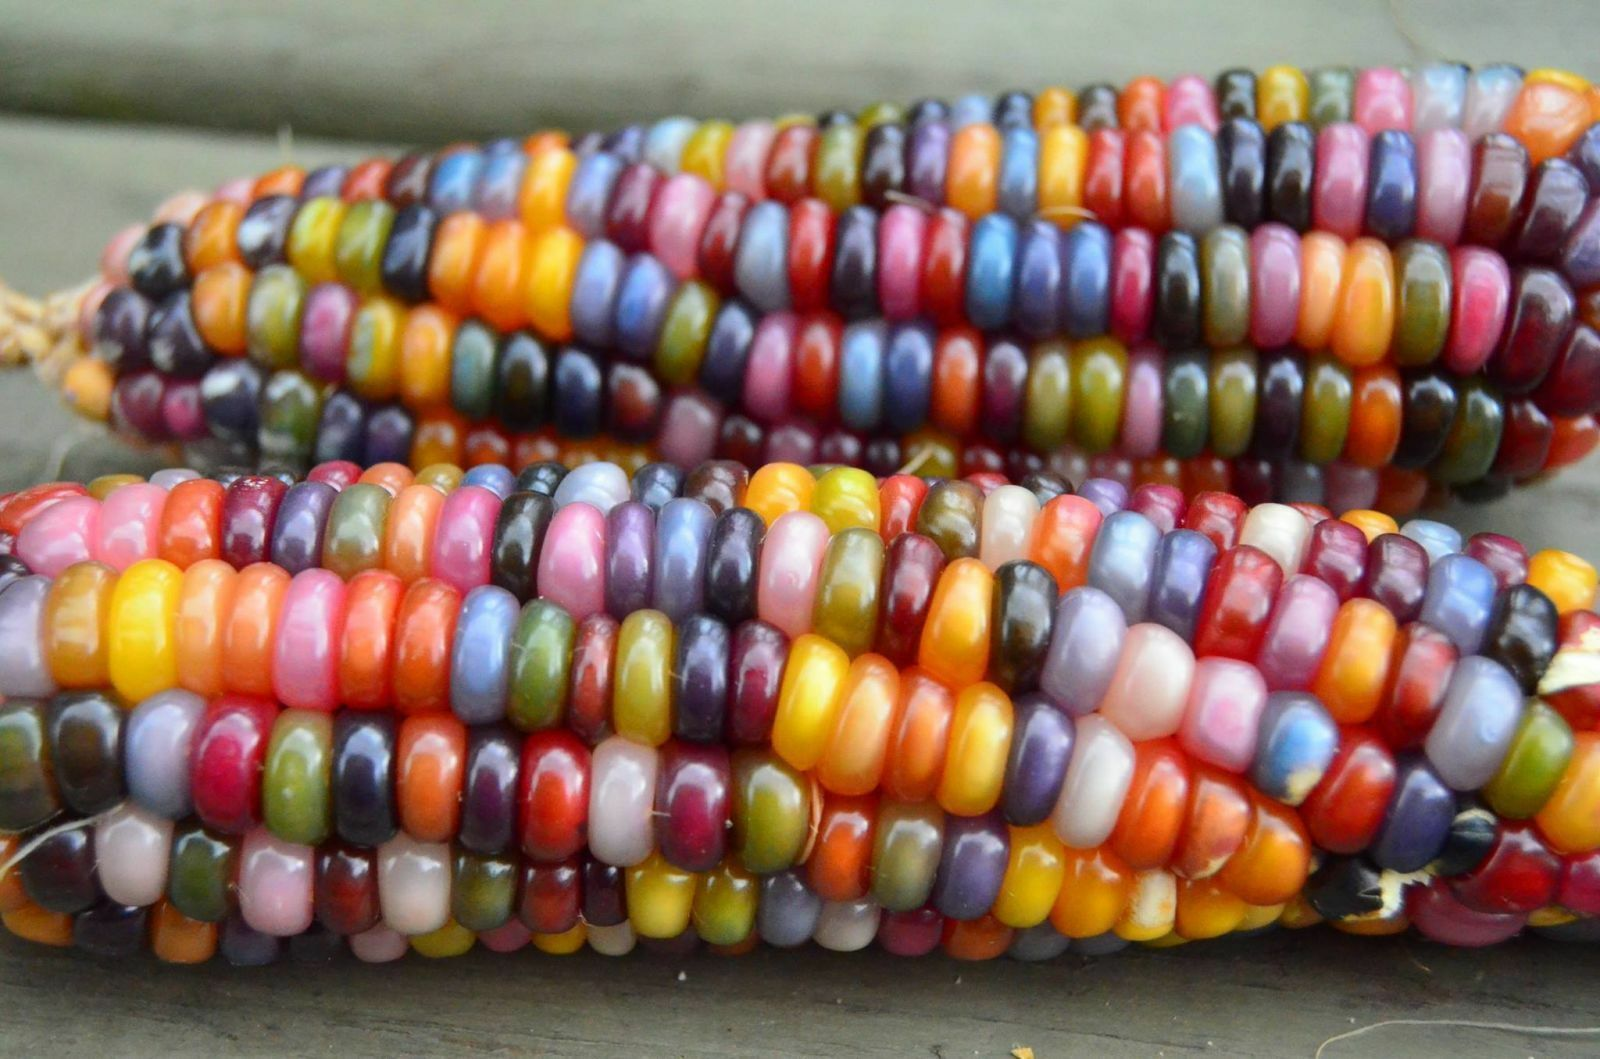 40 RAINBOW CORN SEEDS Coloré Maïs-grain Graines Sweet verre Gem graines potagères